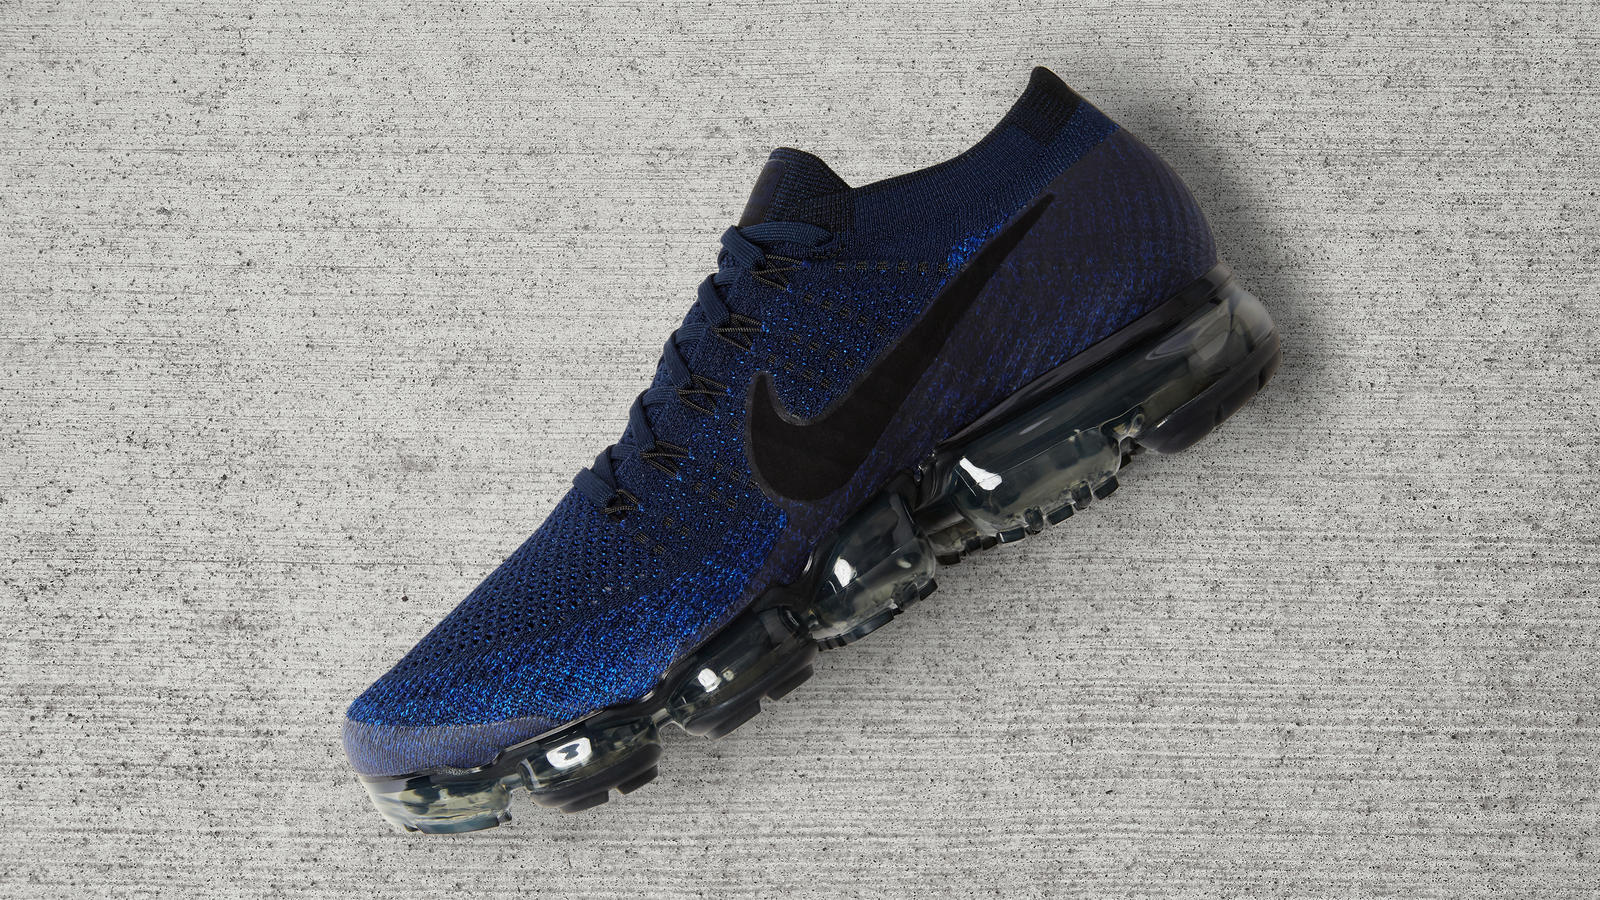 vapormax day to night pack